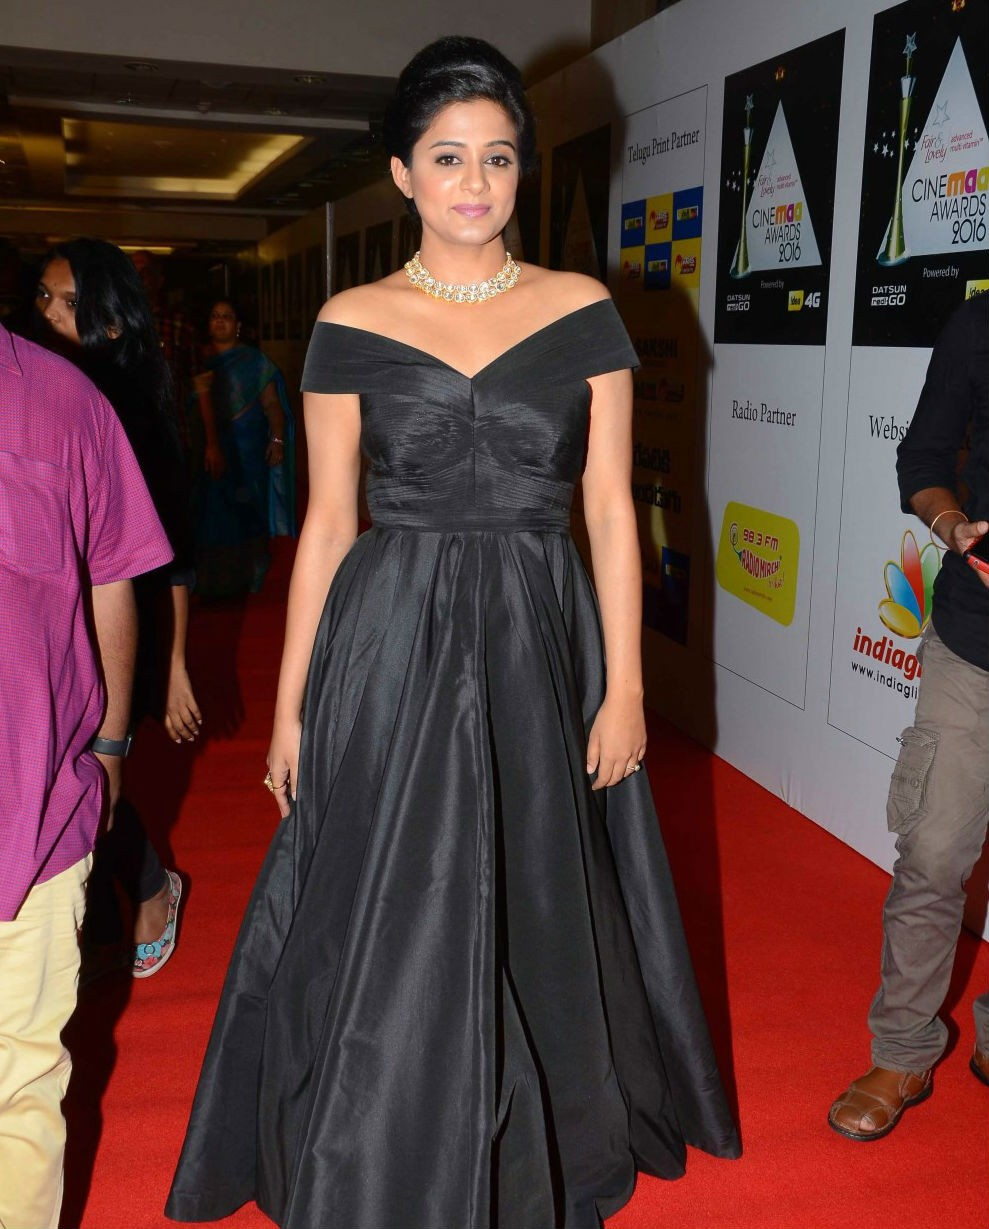 CineMAA Awards 2016,CineMAA Awards,CineMAA Awards 2016 Red Carpet,CineMAA Awards Red Carpet,Tamannaah,Shriya Saran,Charmee Kaur,Rakul Preet Singh,CineMAA Awards 2016 Red Carpet pics,CineMAA Awards 2016 Red Carpet images,CineMAA Awards 2016 Red Carpet phot